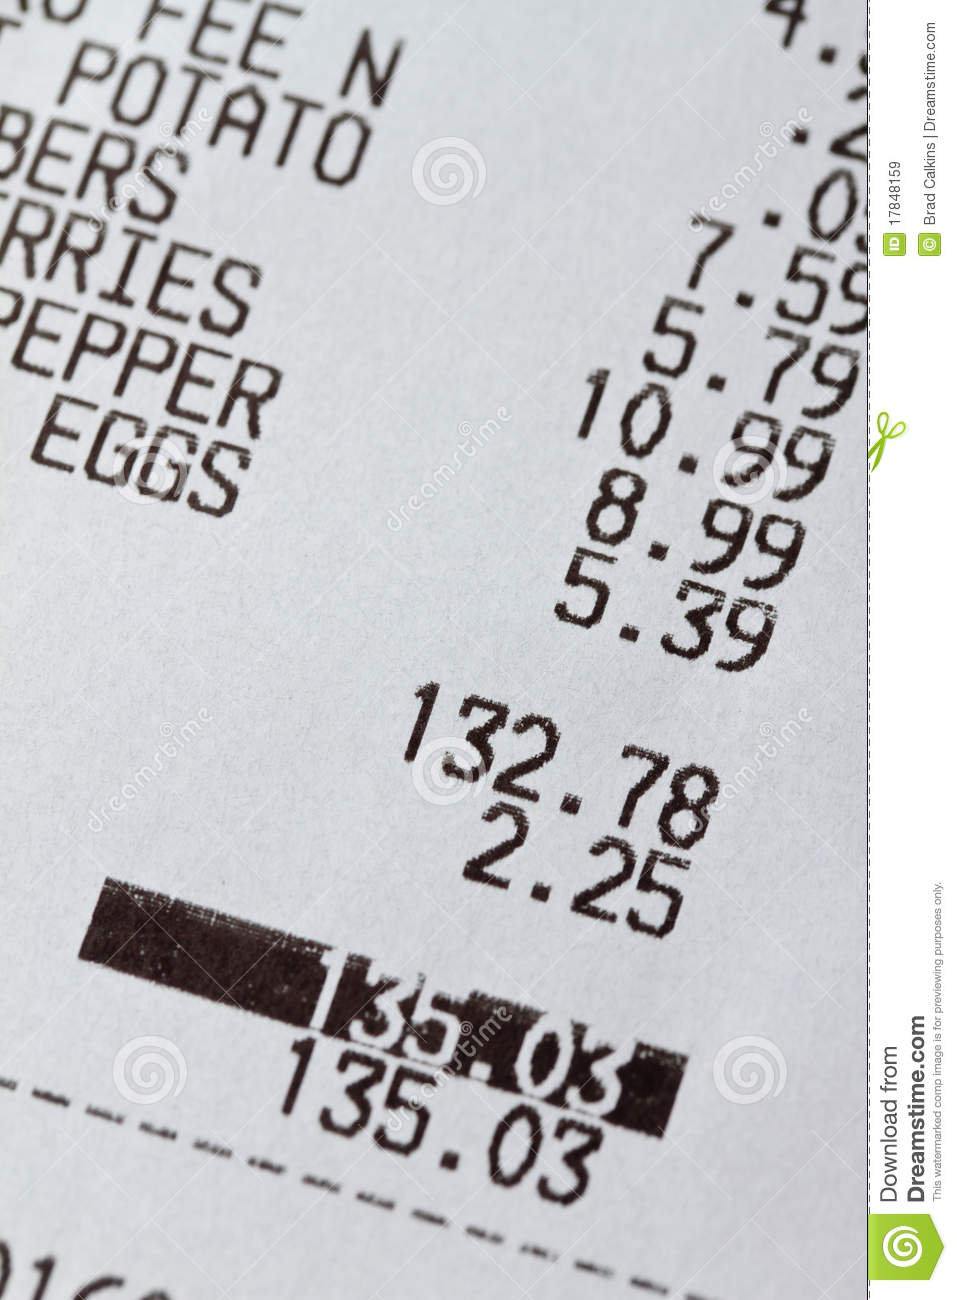 grocery receipt stock image image of pricing  eggs First Amendment Clip Art english bill of rights clipart